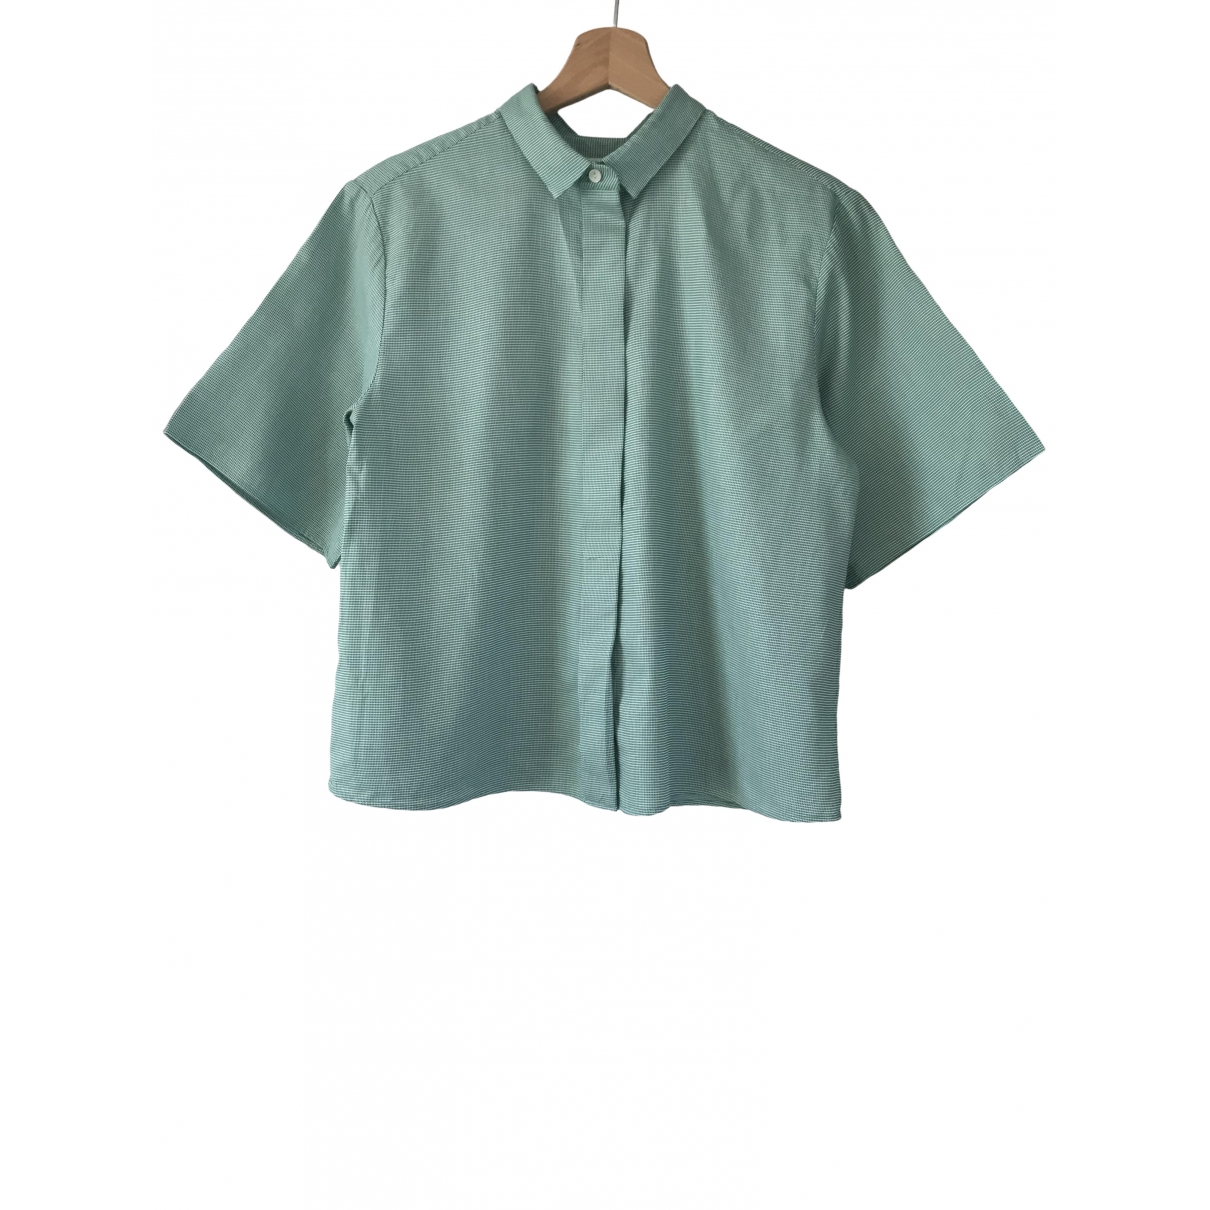 Cos \N Green Cotton  top for Women 36 FR